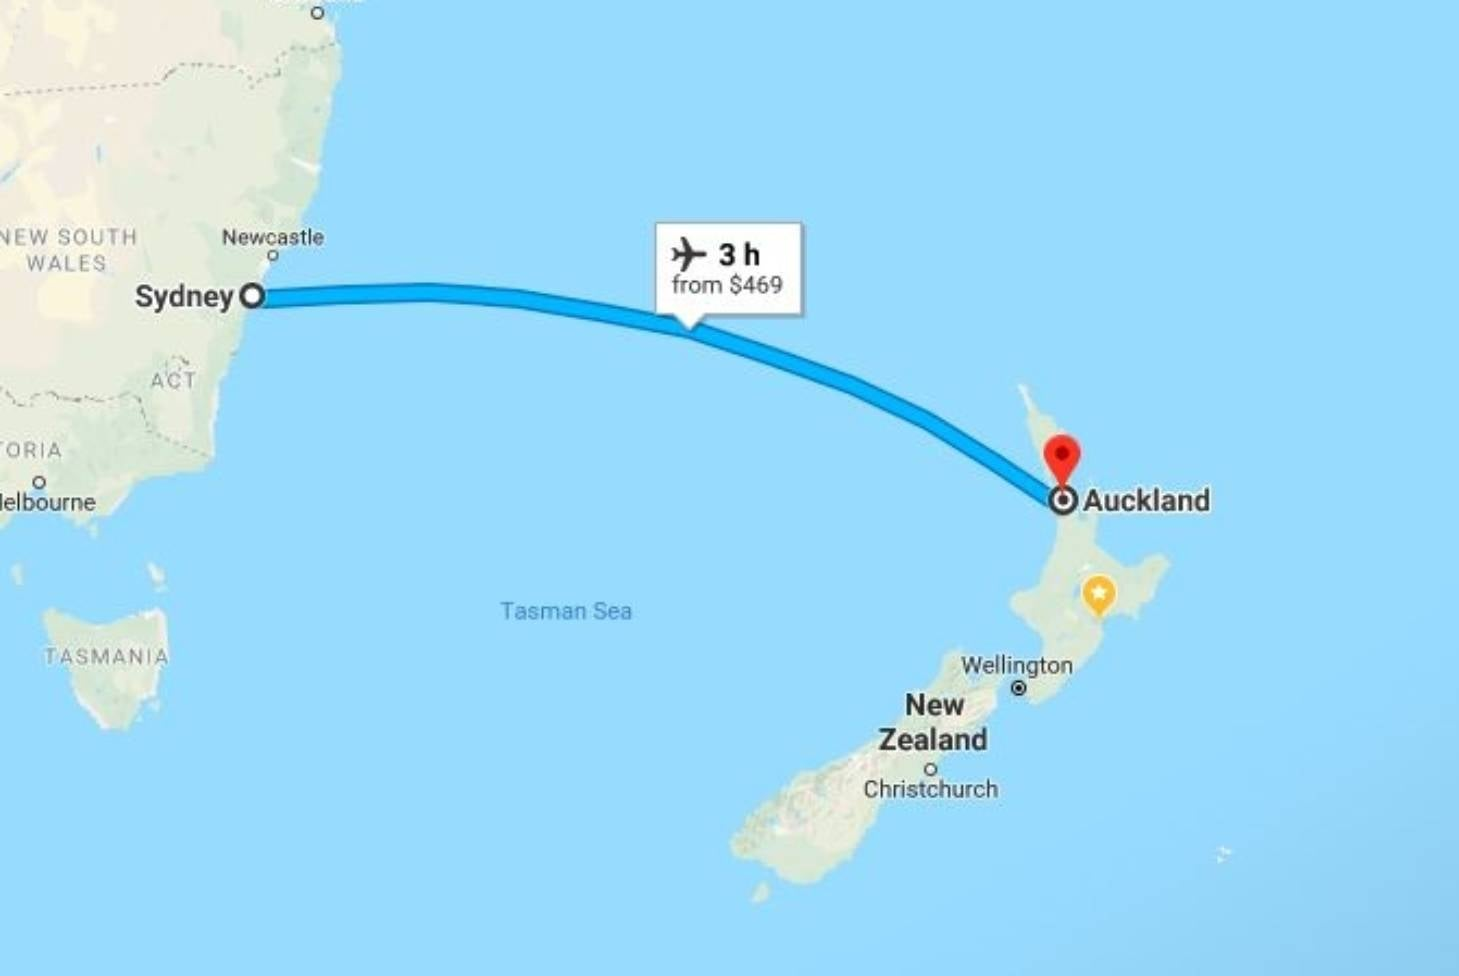 Where Is Wellington New Zealand On The Map.Tourist Ridiculed Online For Asking How To Drive From Sydney To New